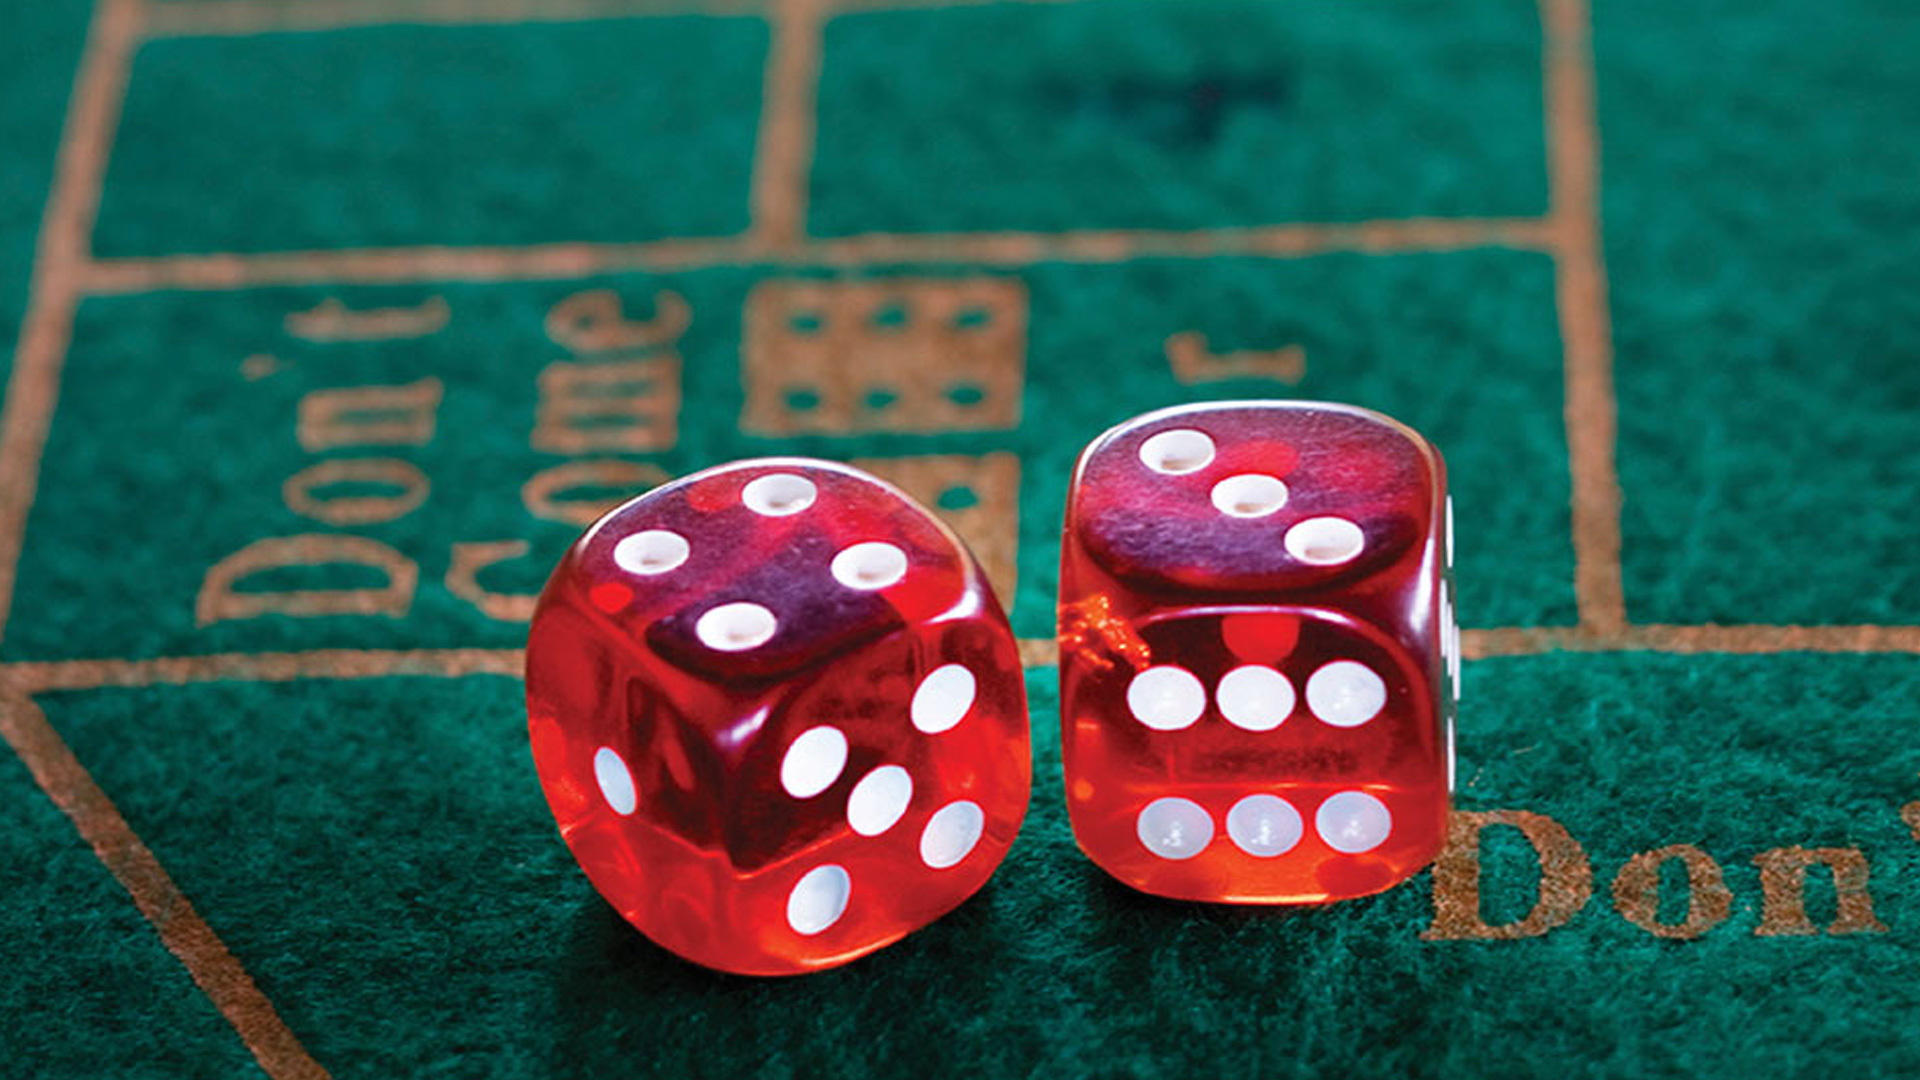 Dice showing 4 and 3 sitting on a green felt craps table